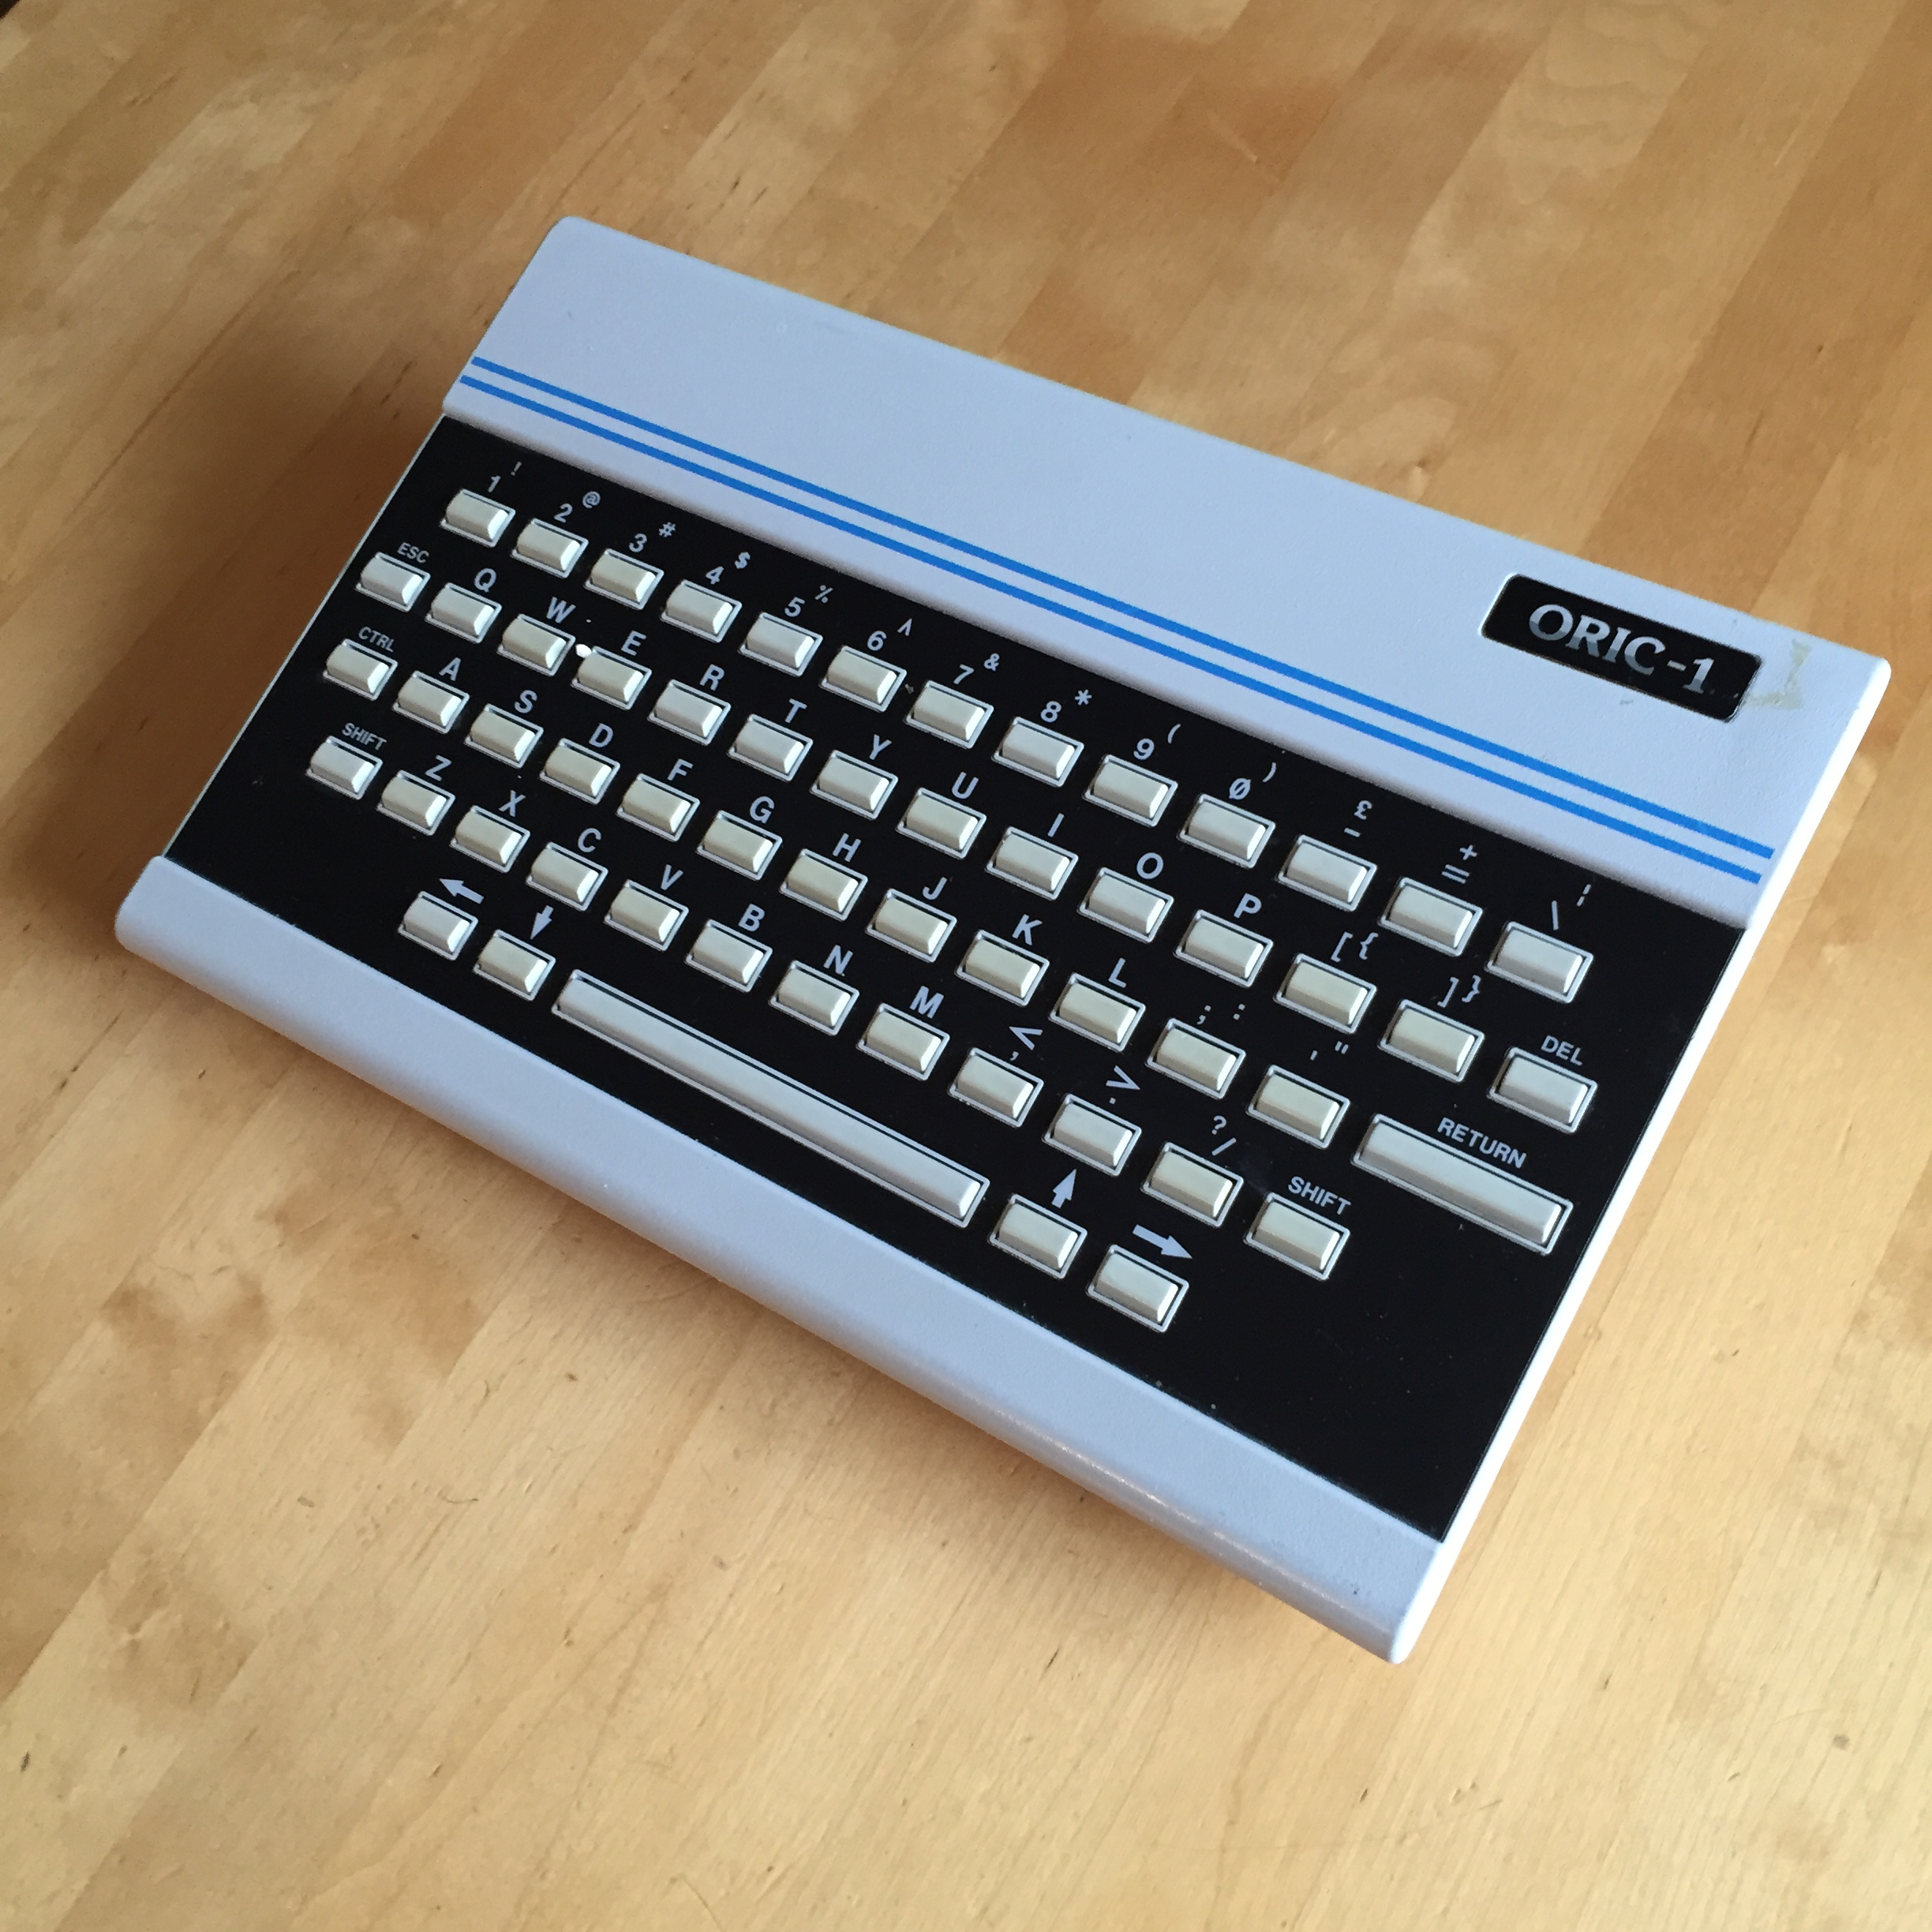 Oric-1 microcomputer